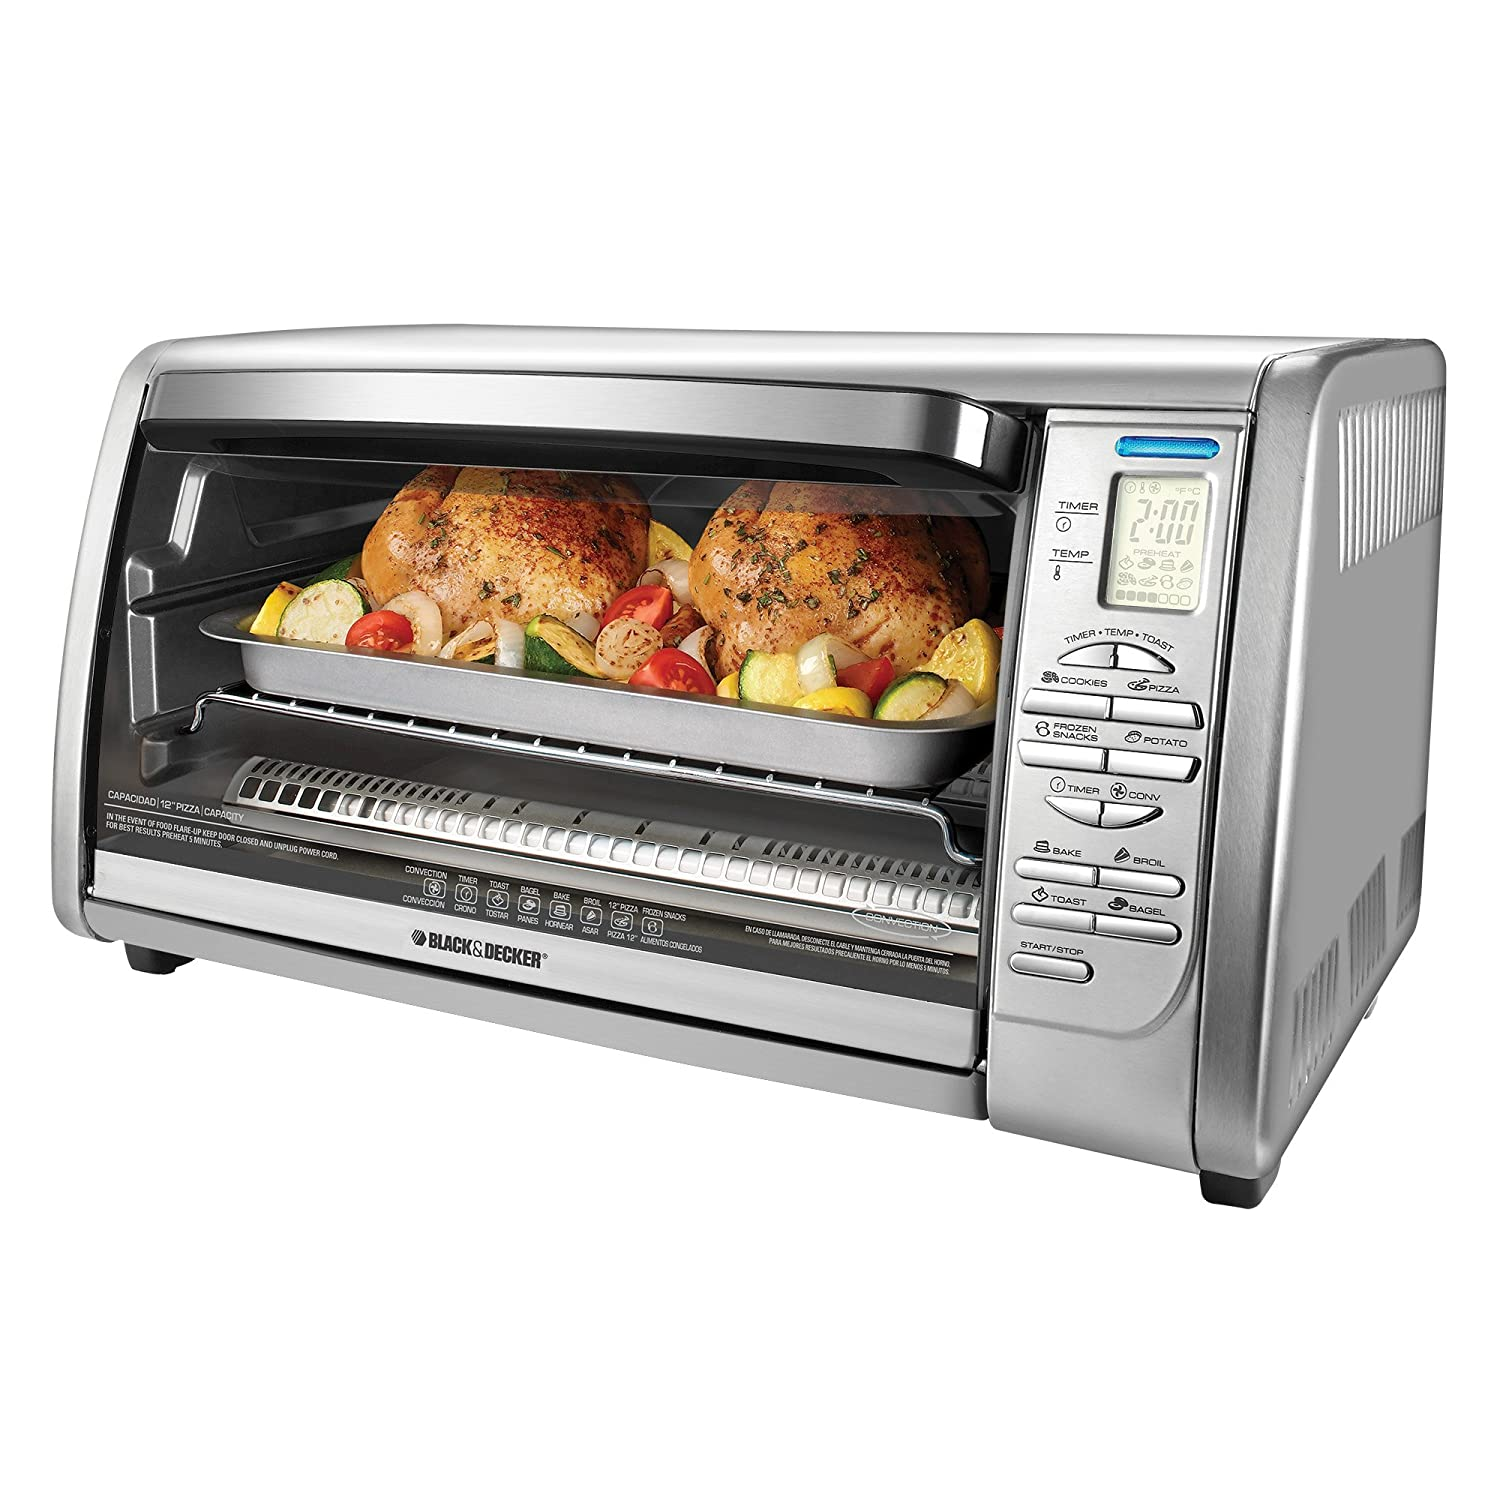 Toaster oven with two chickens